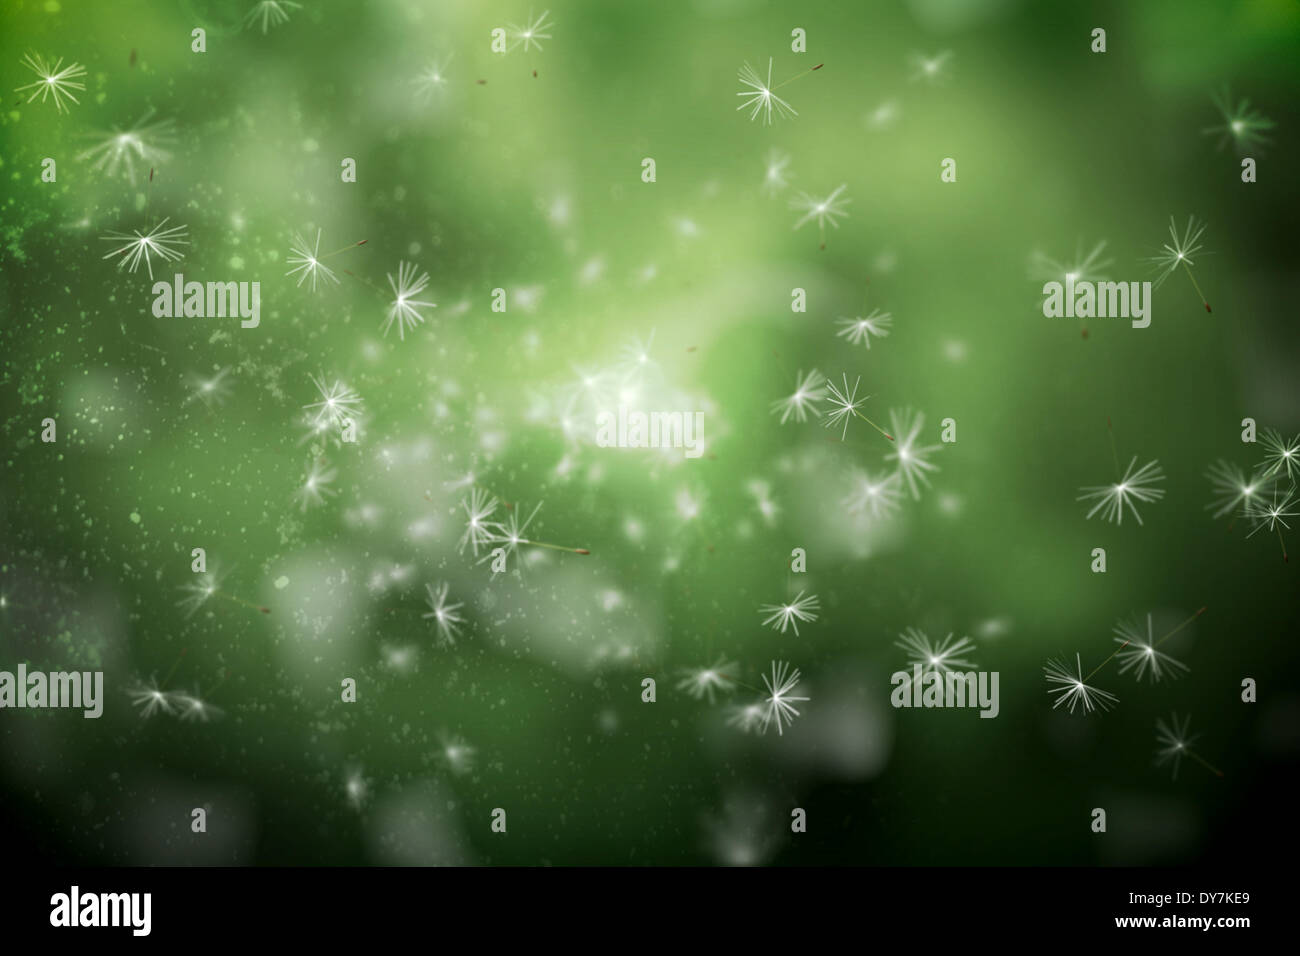 Digitally generated dandelion seeds on green background - Stock Image